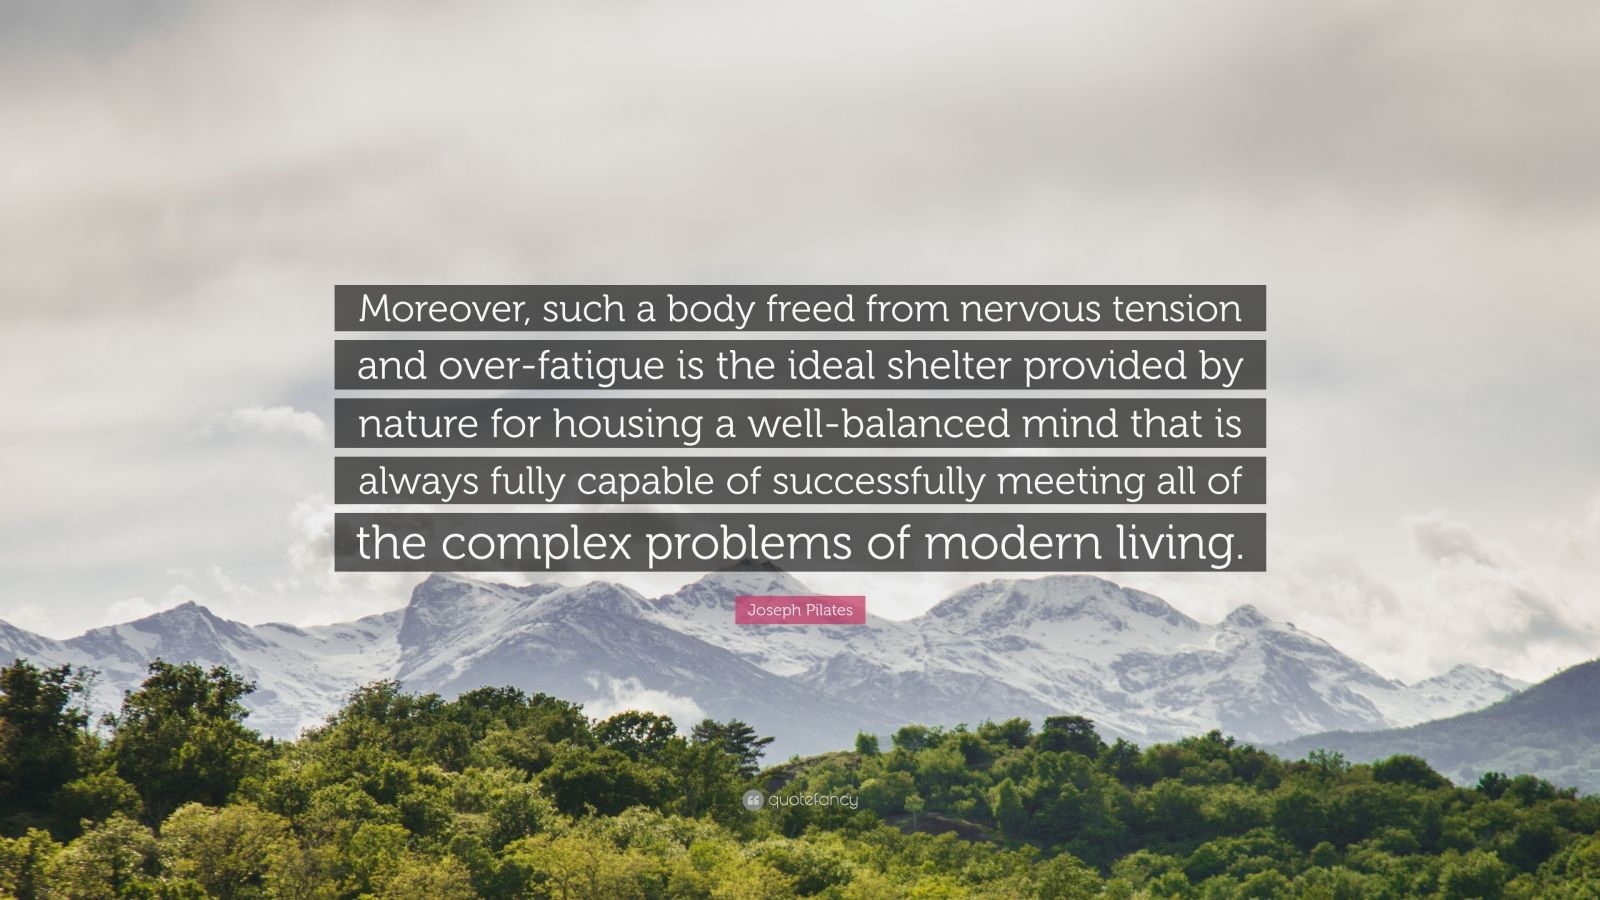 """Joseph Pilates Quote: """"Moreover, such a body freed from nervous tension and over-fatigue is the ideal shelter provided by nature for housing a well-balanced mind that is always fully capable of successfully meeting all of the complex problems of modern living."""""""